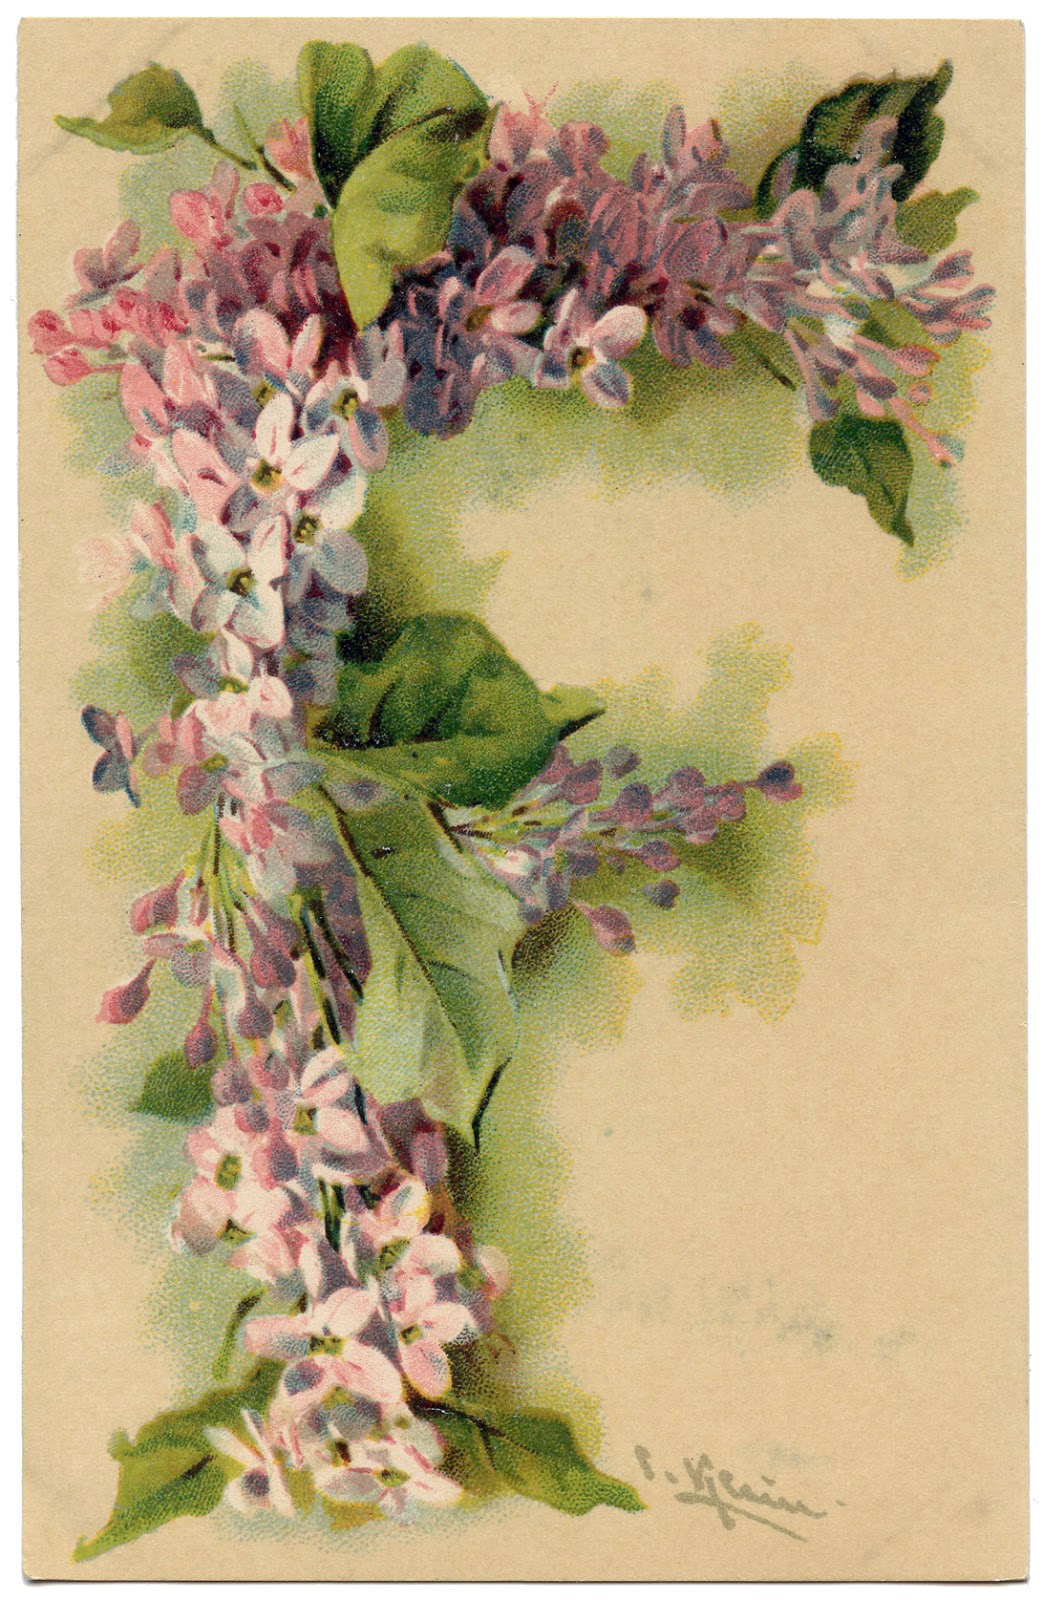 Lilac-Letter-F-Vintage-Image-GraphicsFairy1